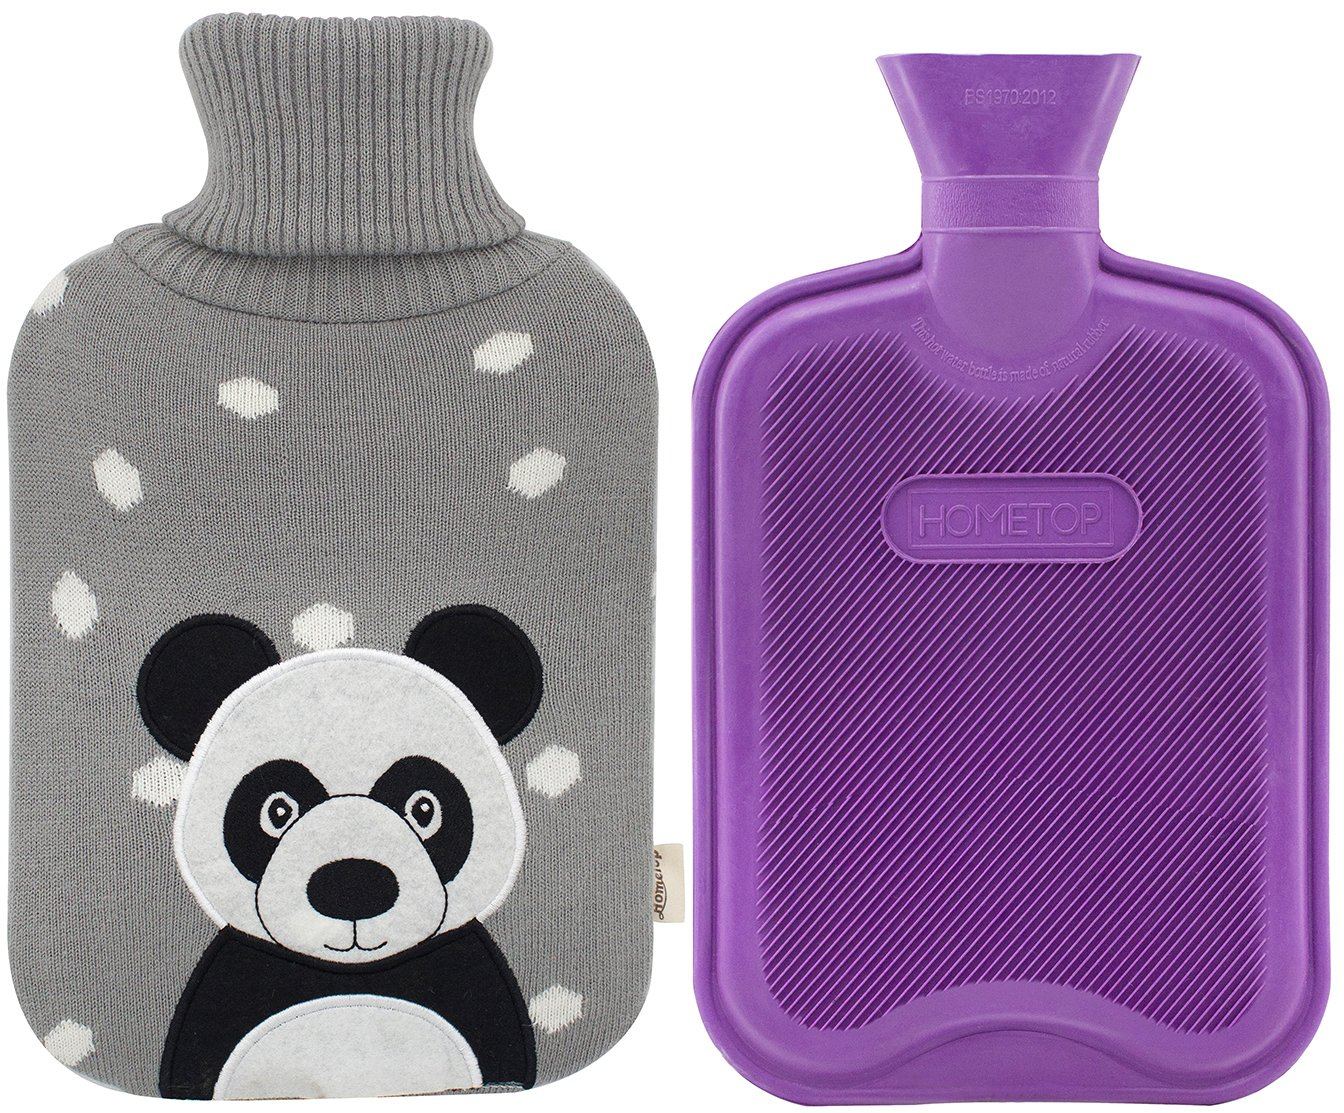 Premium Classic Rubber Hot Water Bottle and Cute Animal Embroidery Knit Cover (Panda/Gray)